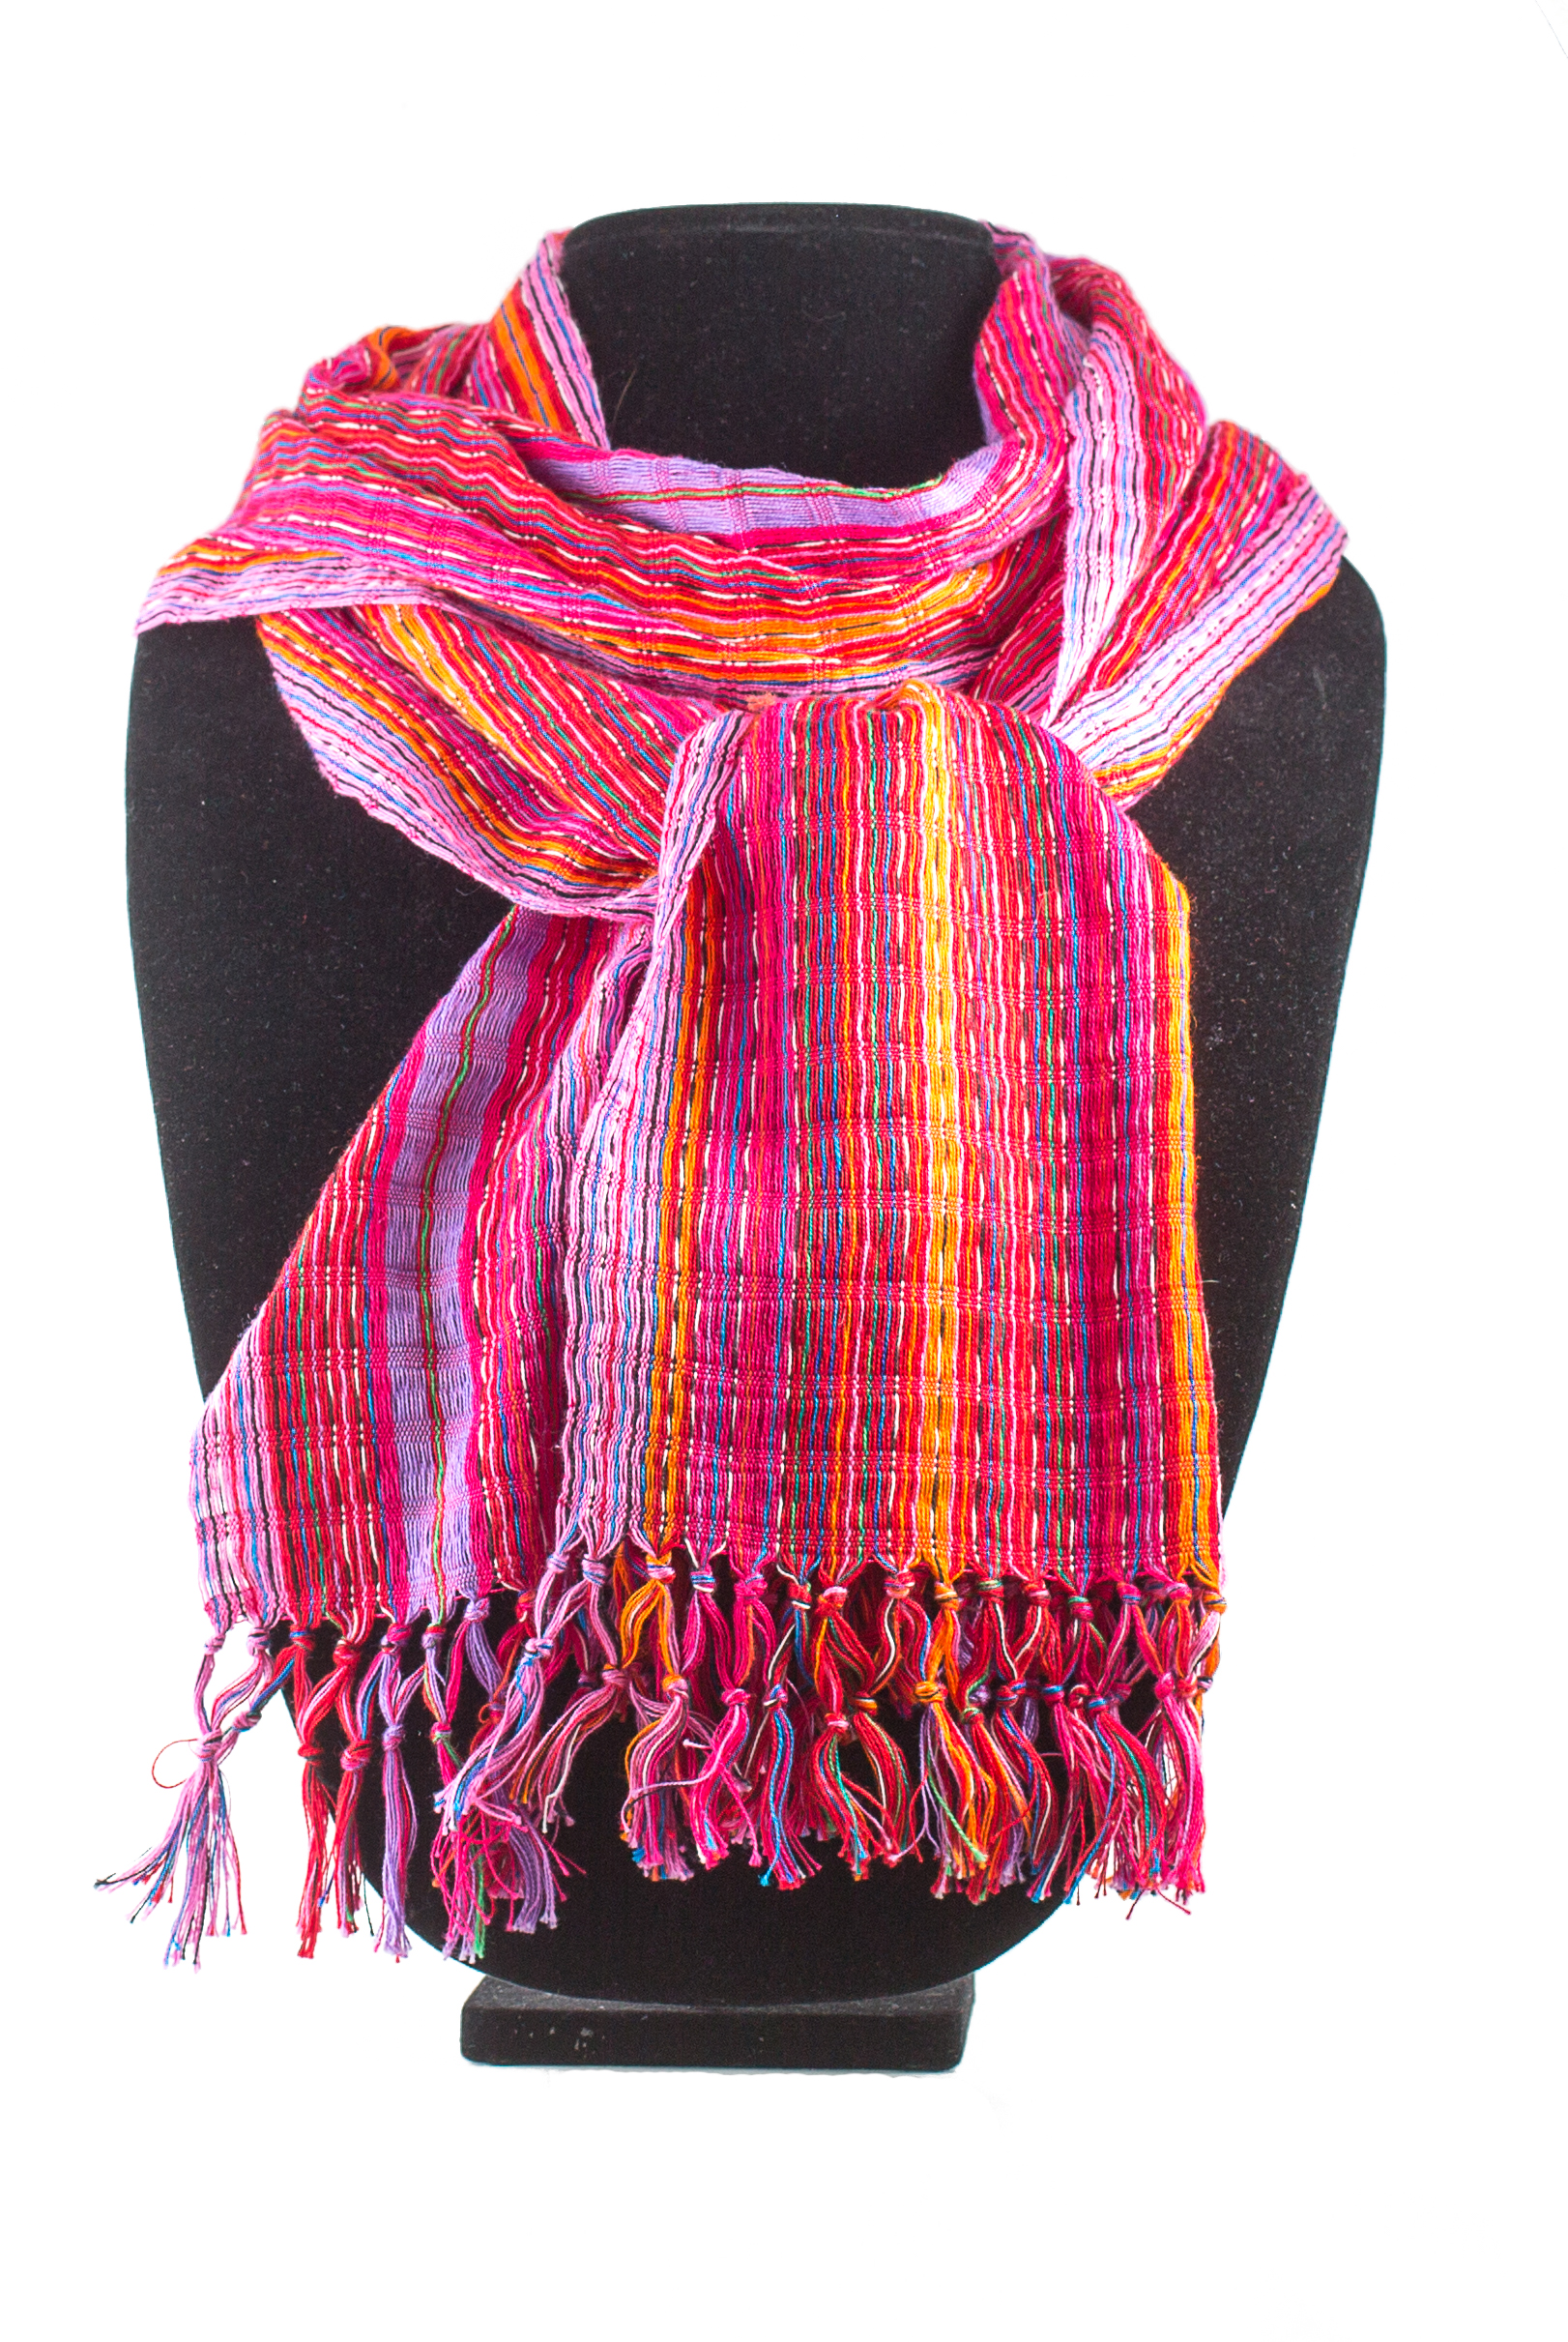 oranges and pinks cotton scarf     $19.00